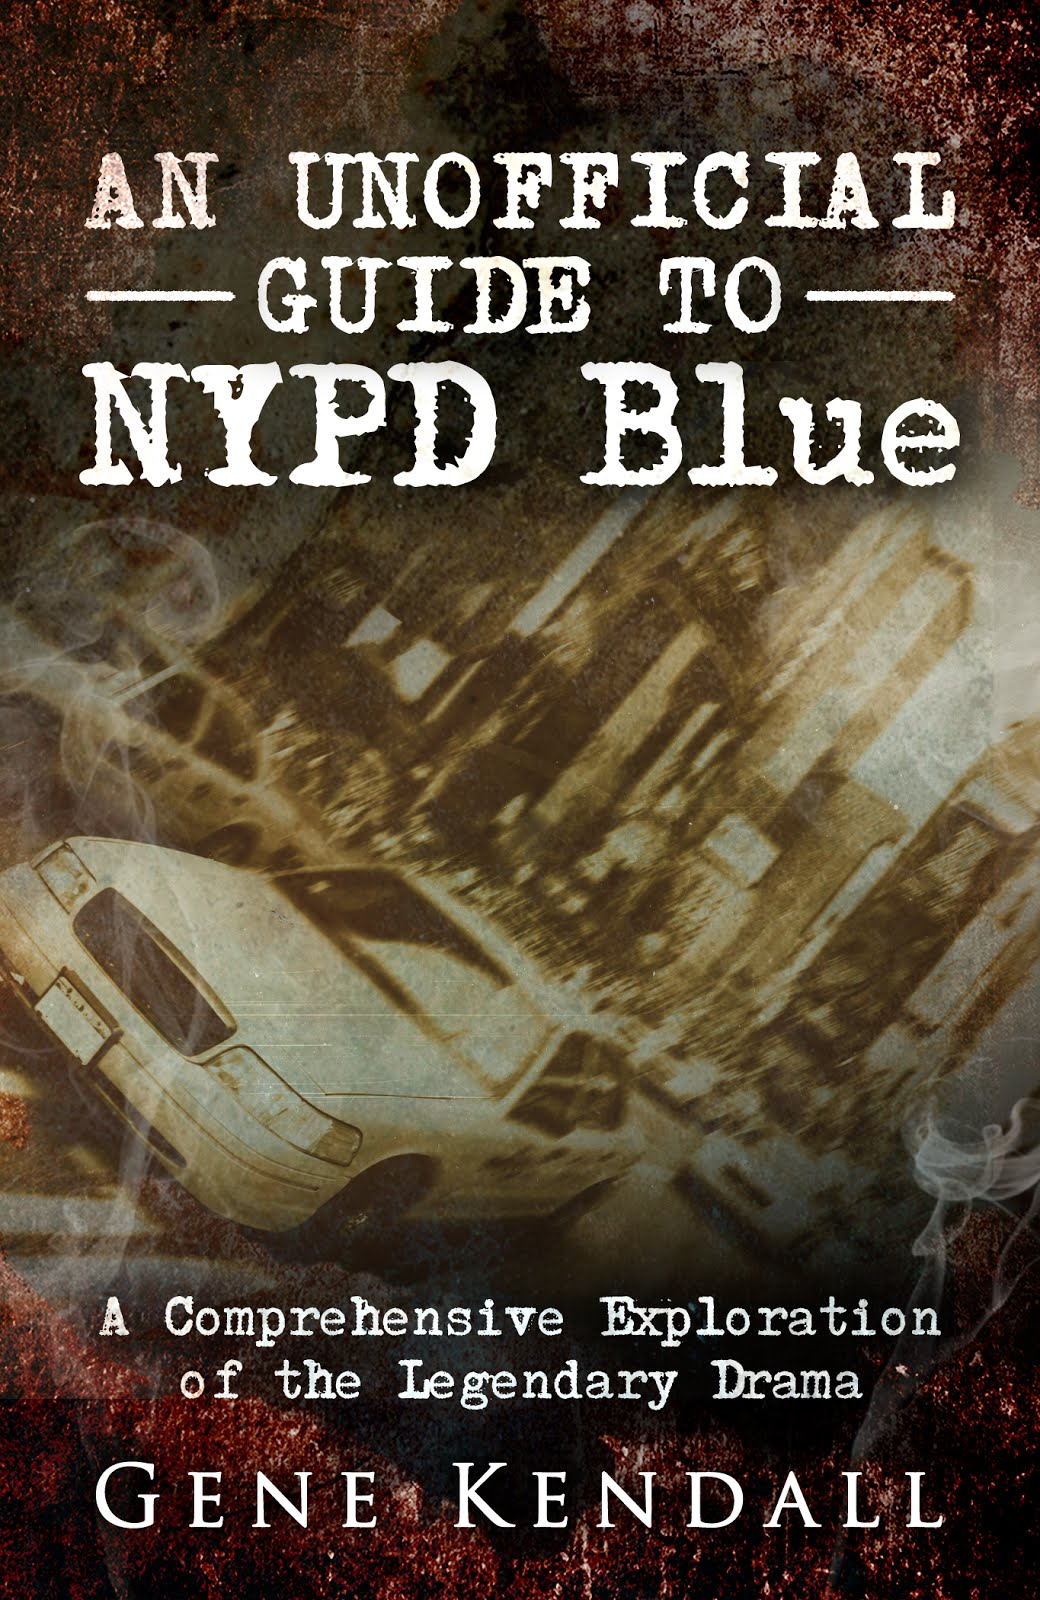 An Unofficial Guide to NYPD Blue